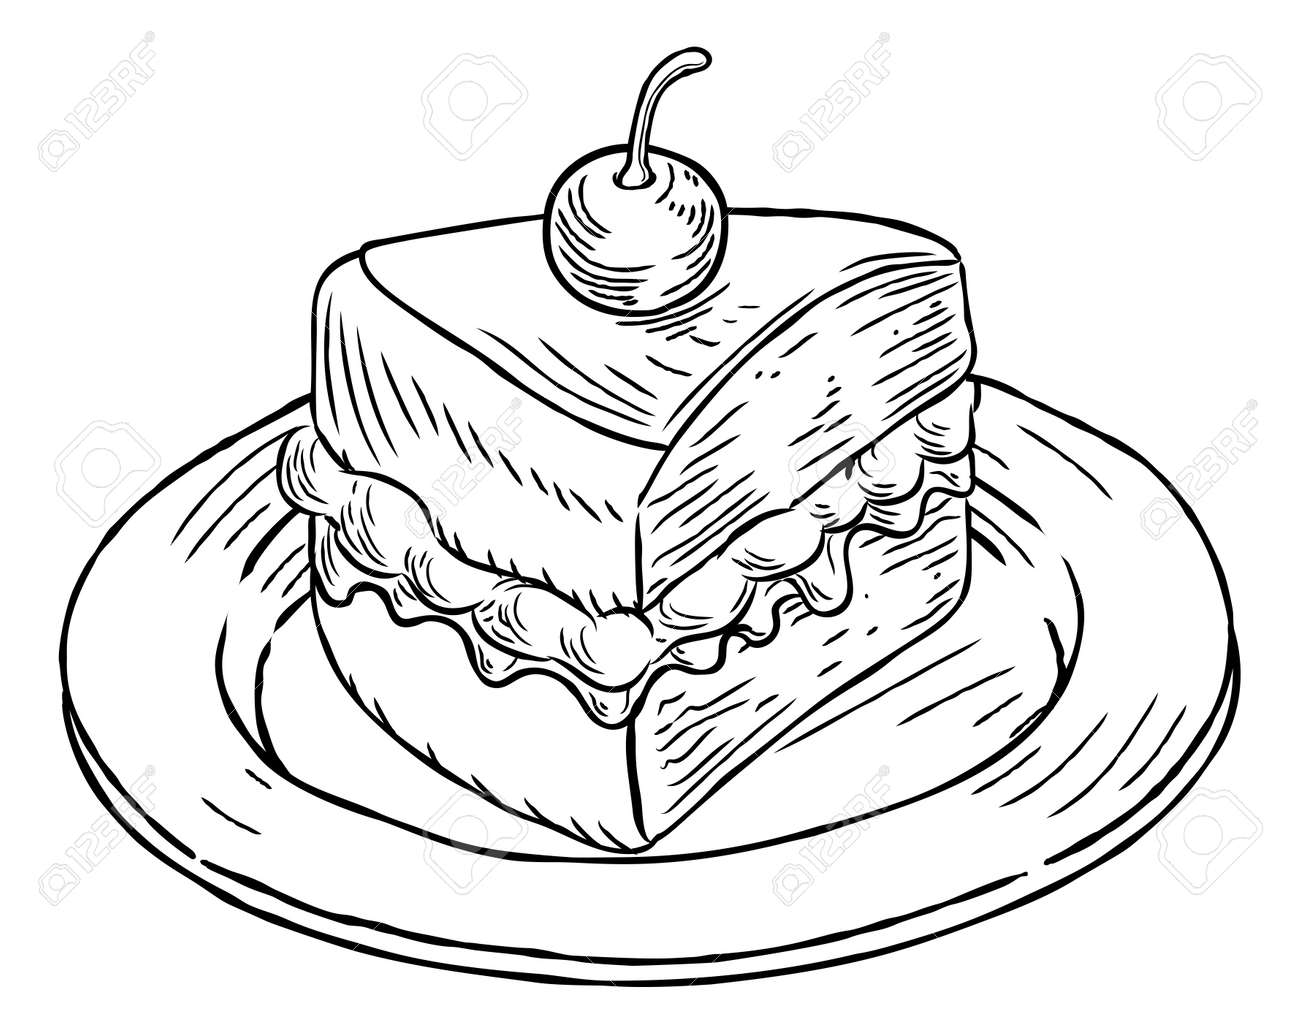 Cake Slice Vintage Retro Woodcut Style Royalty Free Cliparts ... for Drawing Cake Slice  66pct